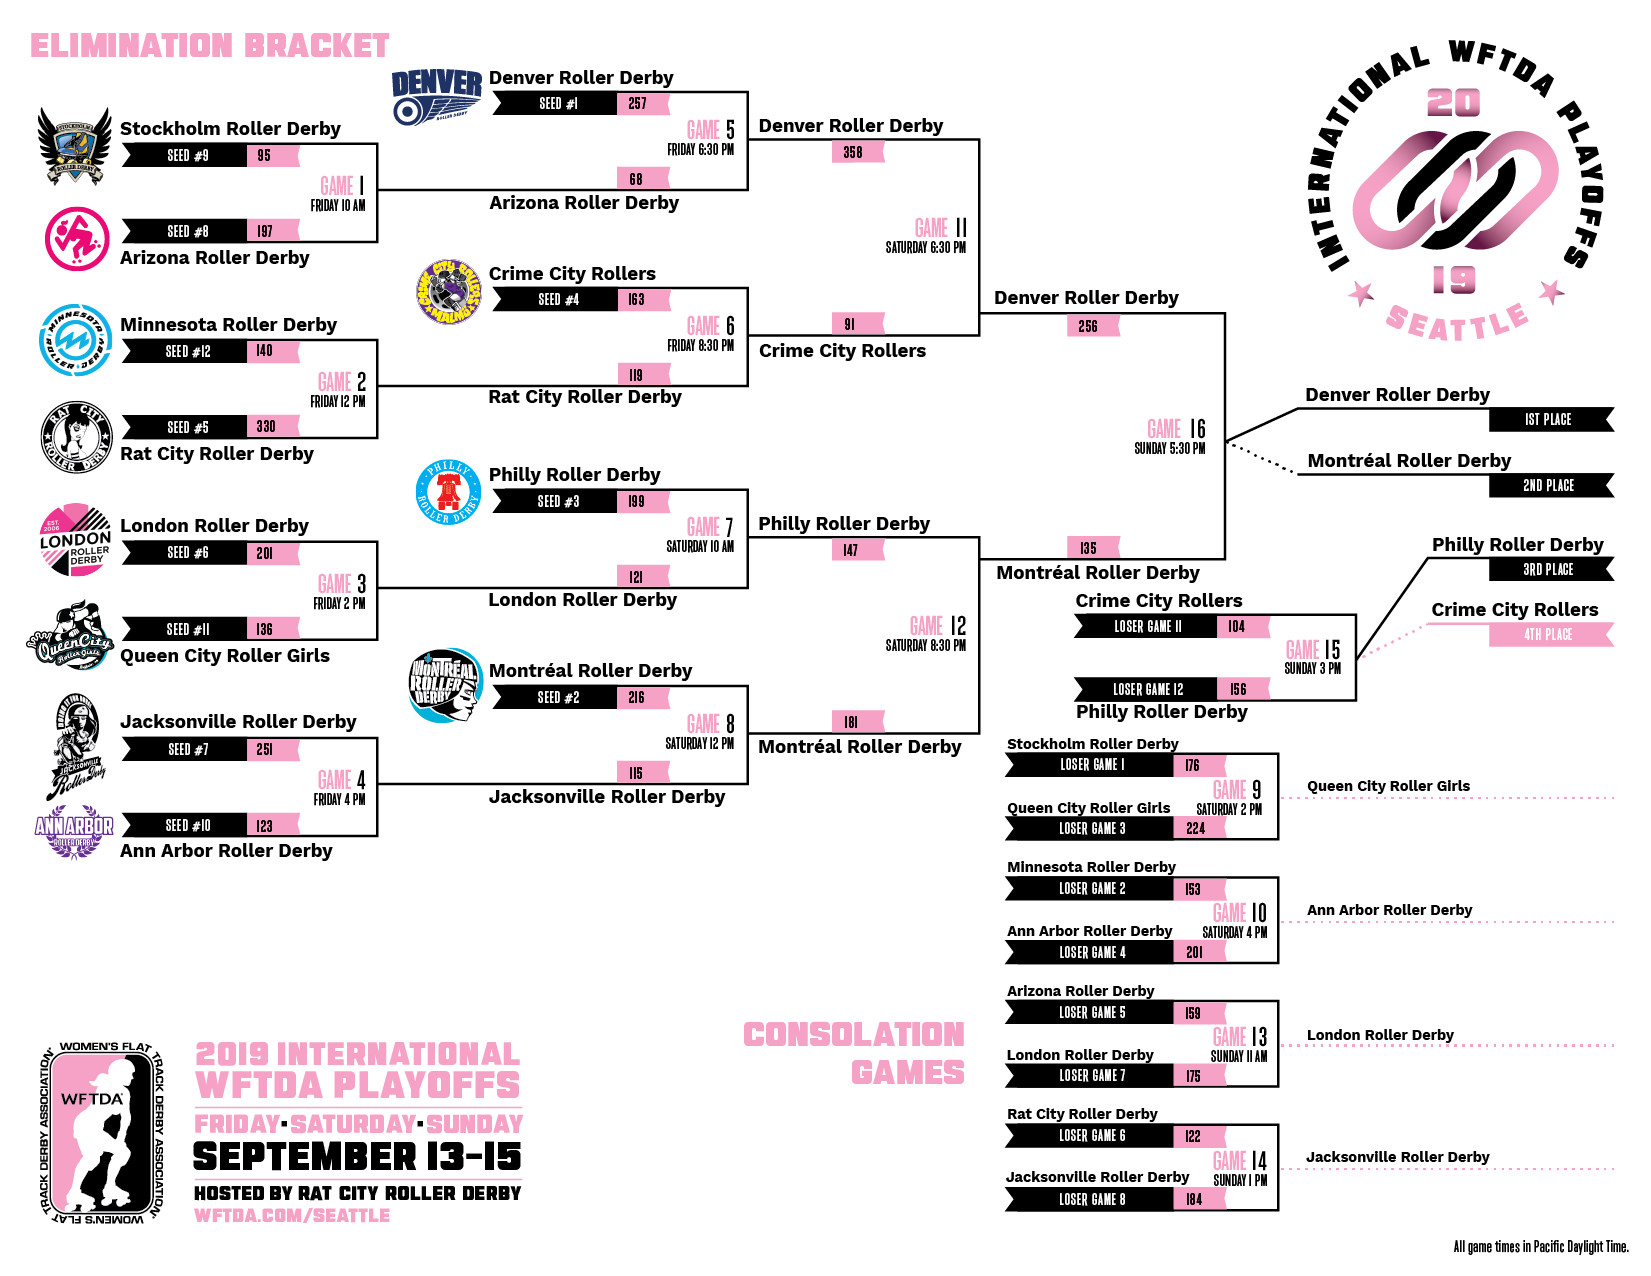 2019 International WFTDA Playoffs: Winston-Salem Bracket